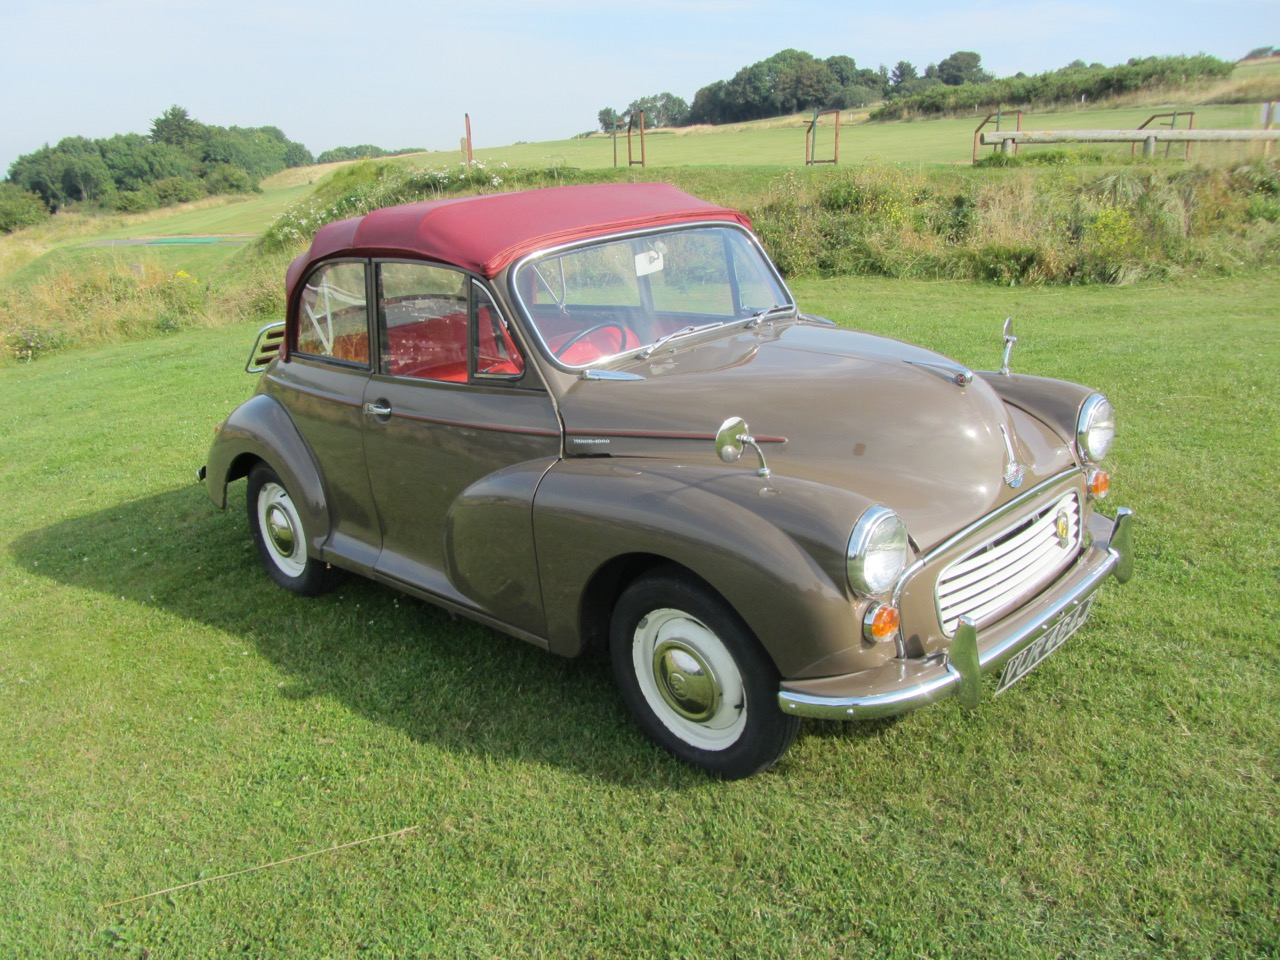 1971 Morris Minor Convertible for sale